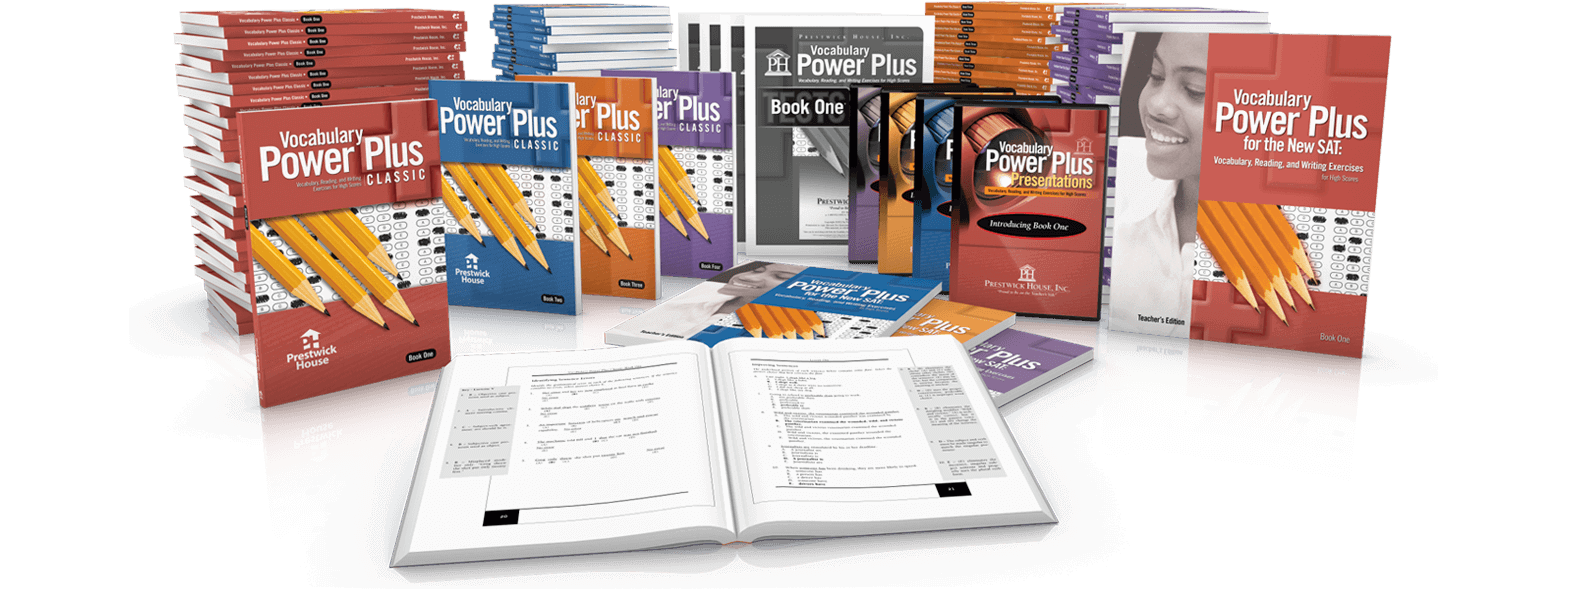 Vocabulary Power Plus - Classic | Prestwick House